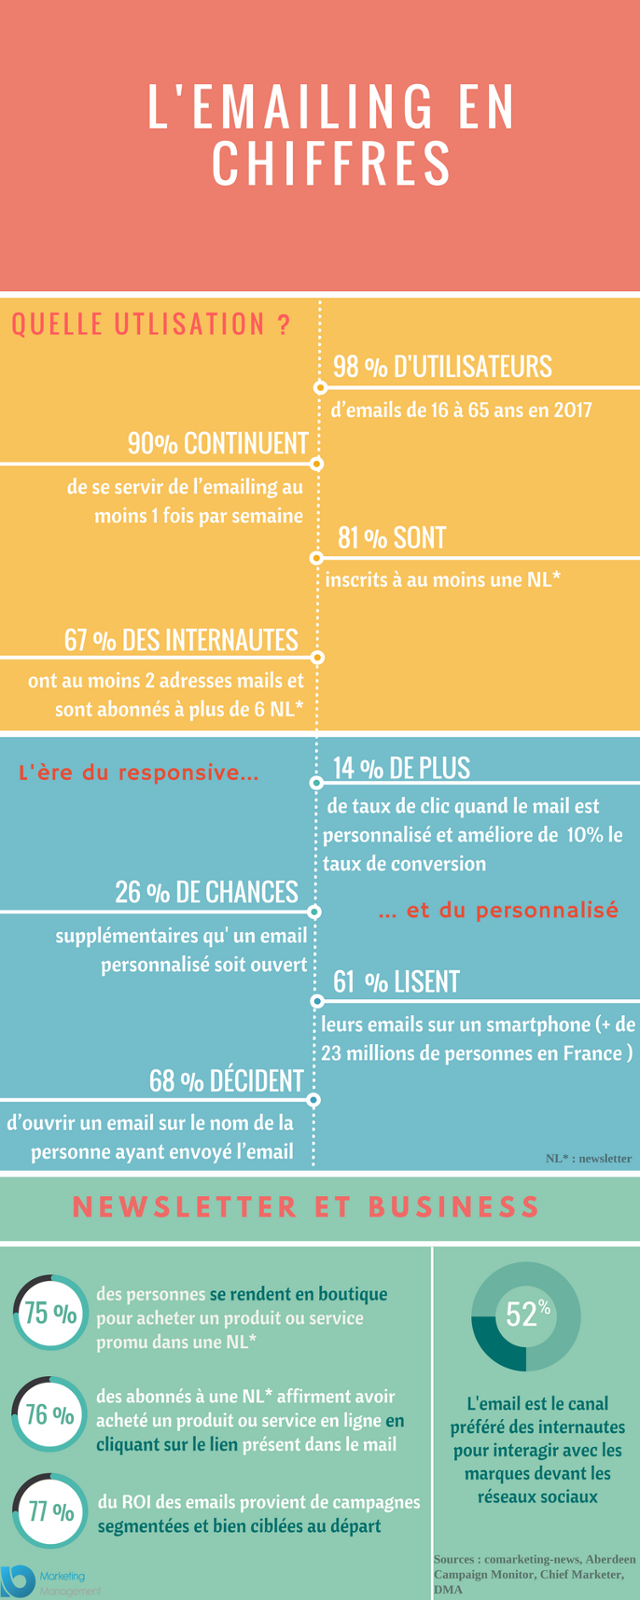 Emailing en chiffres infographie